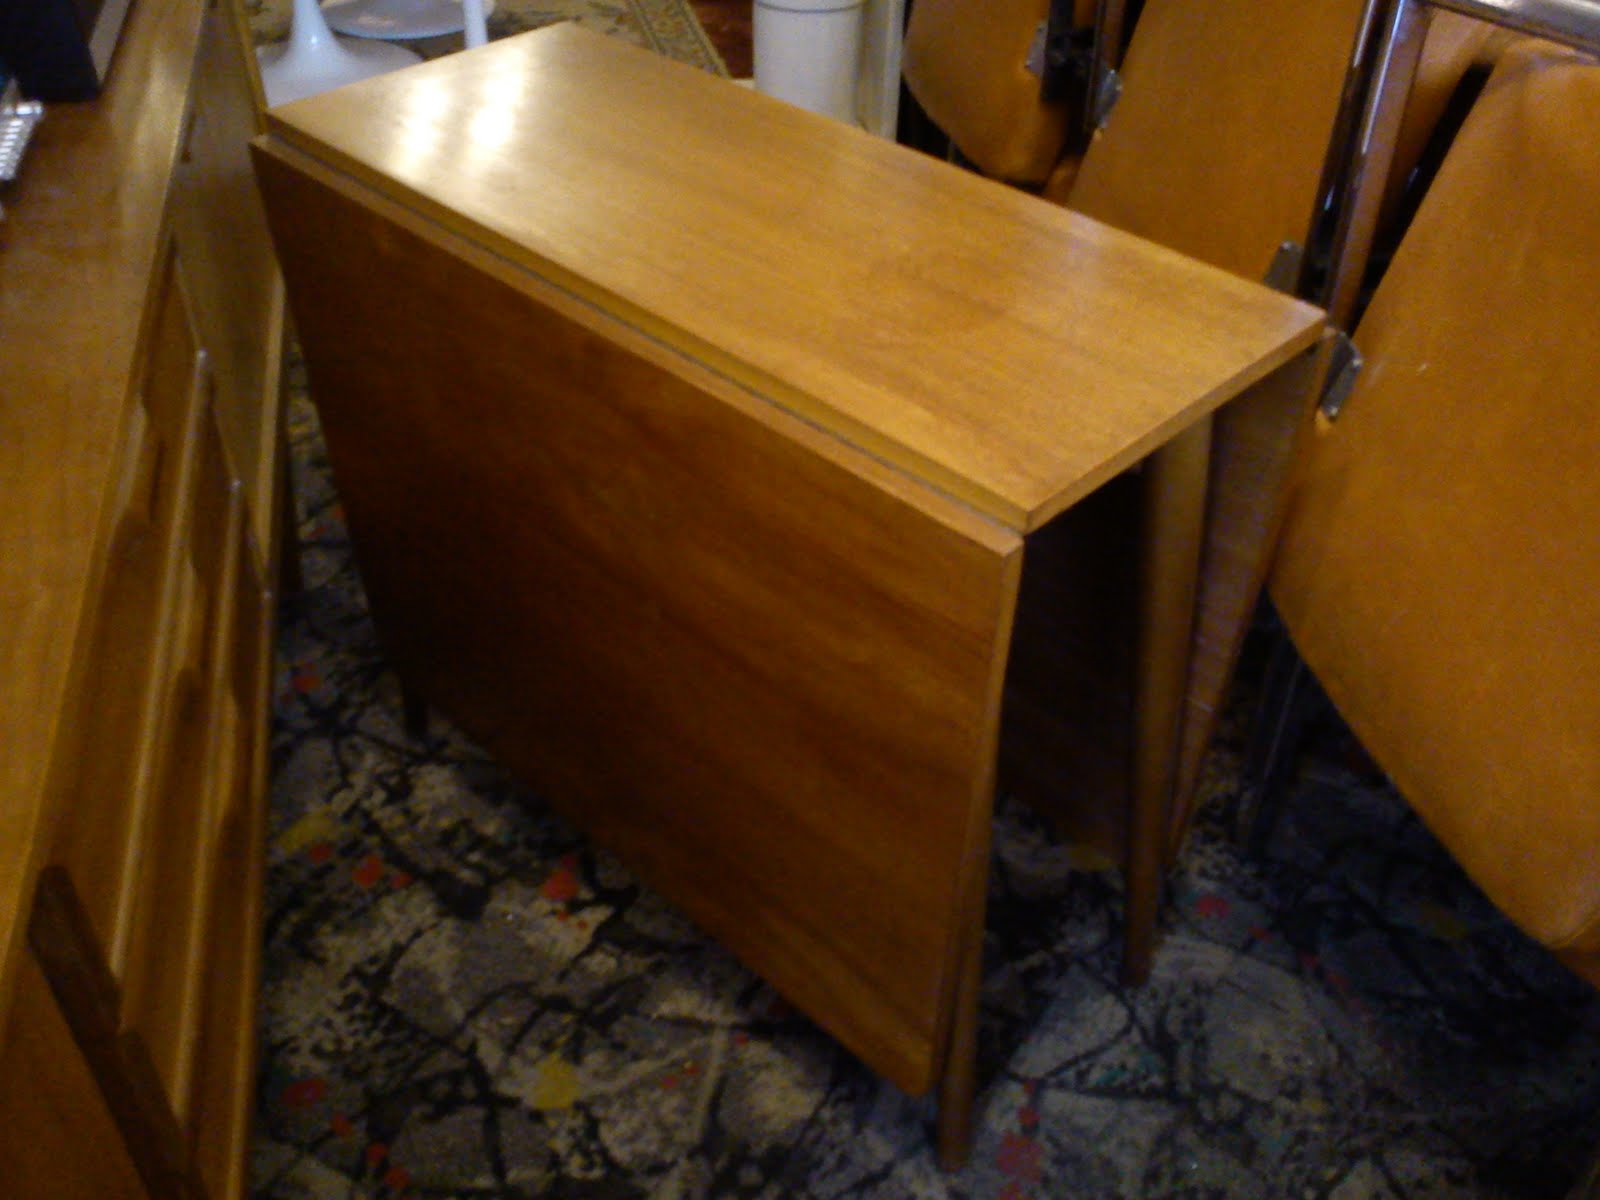 1970s solid teak drop leaf dining table £SOLD